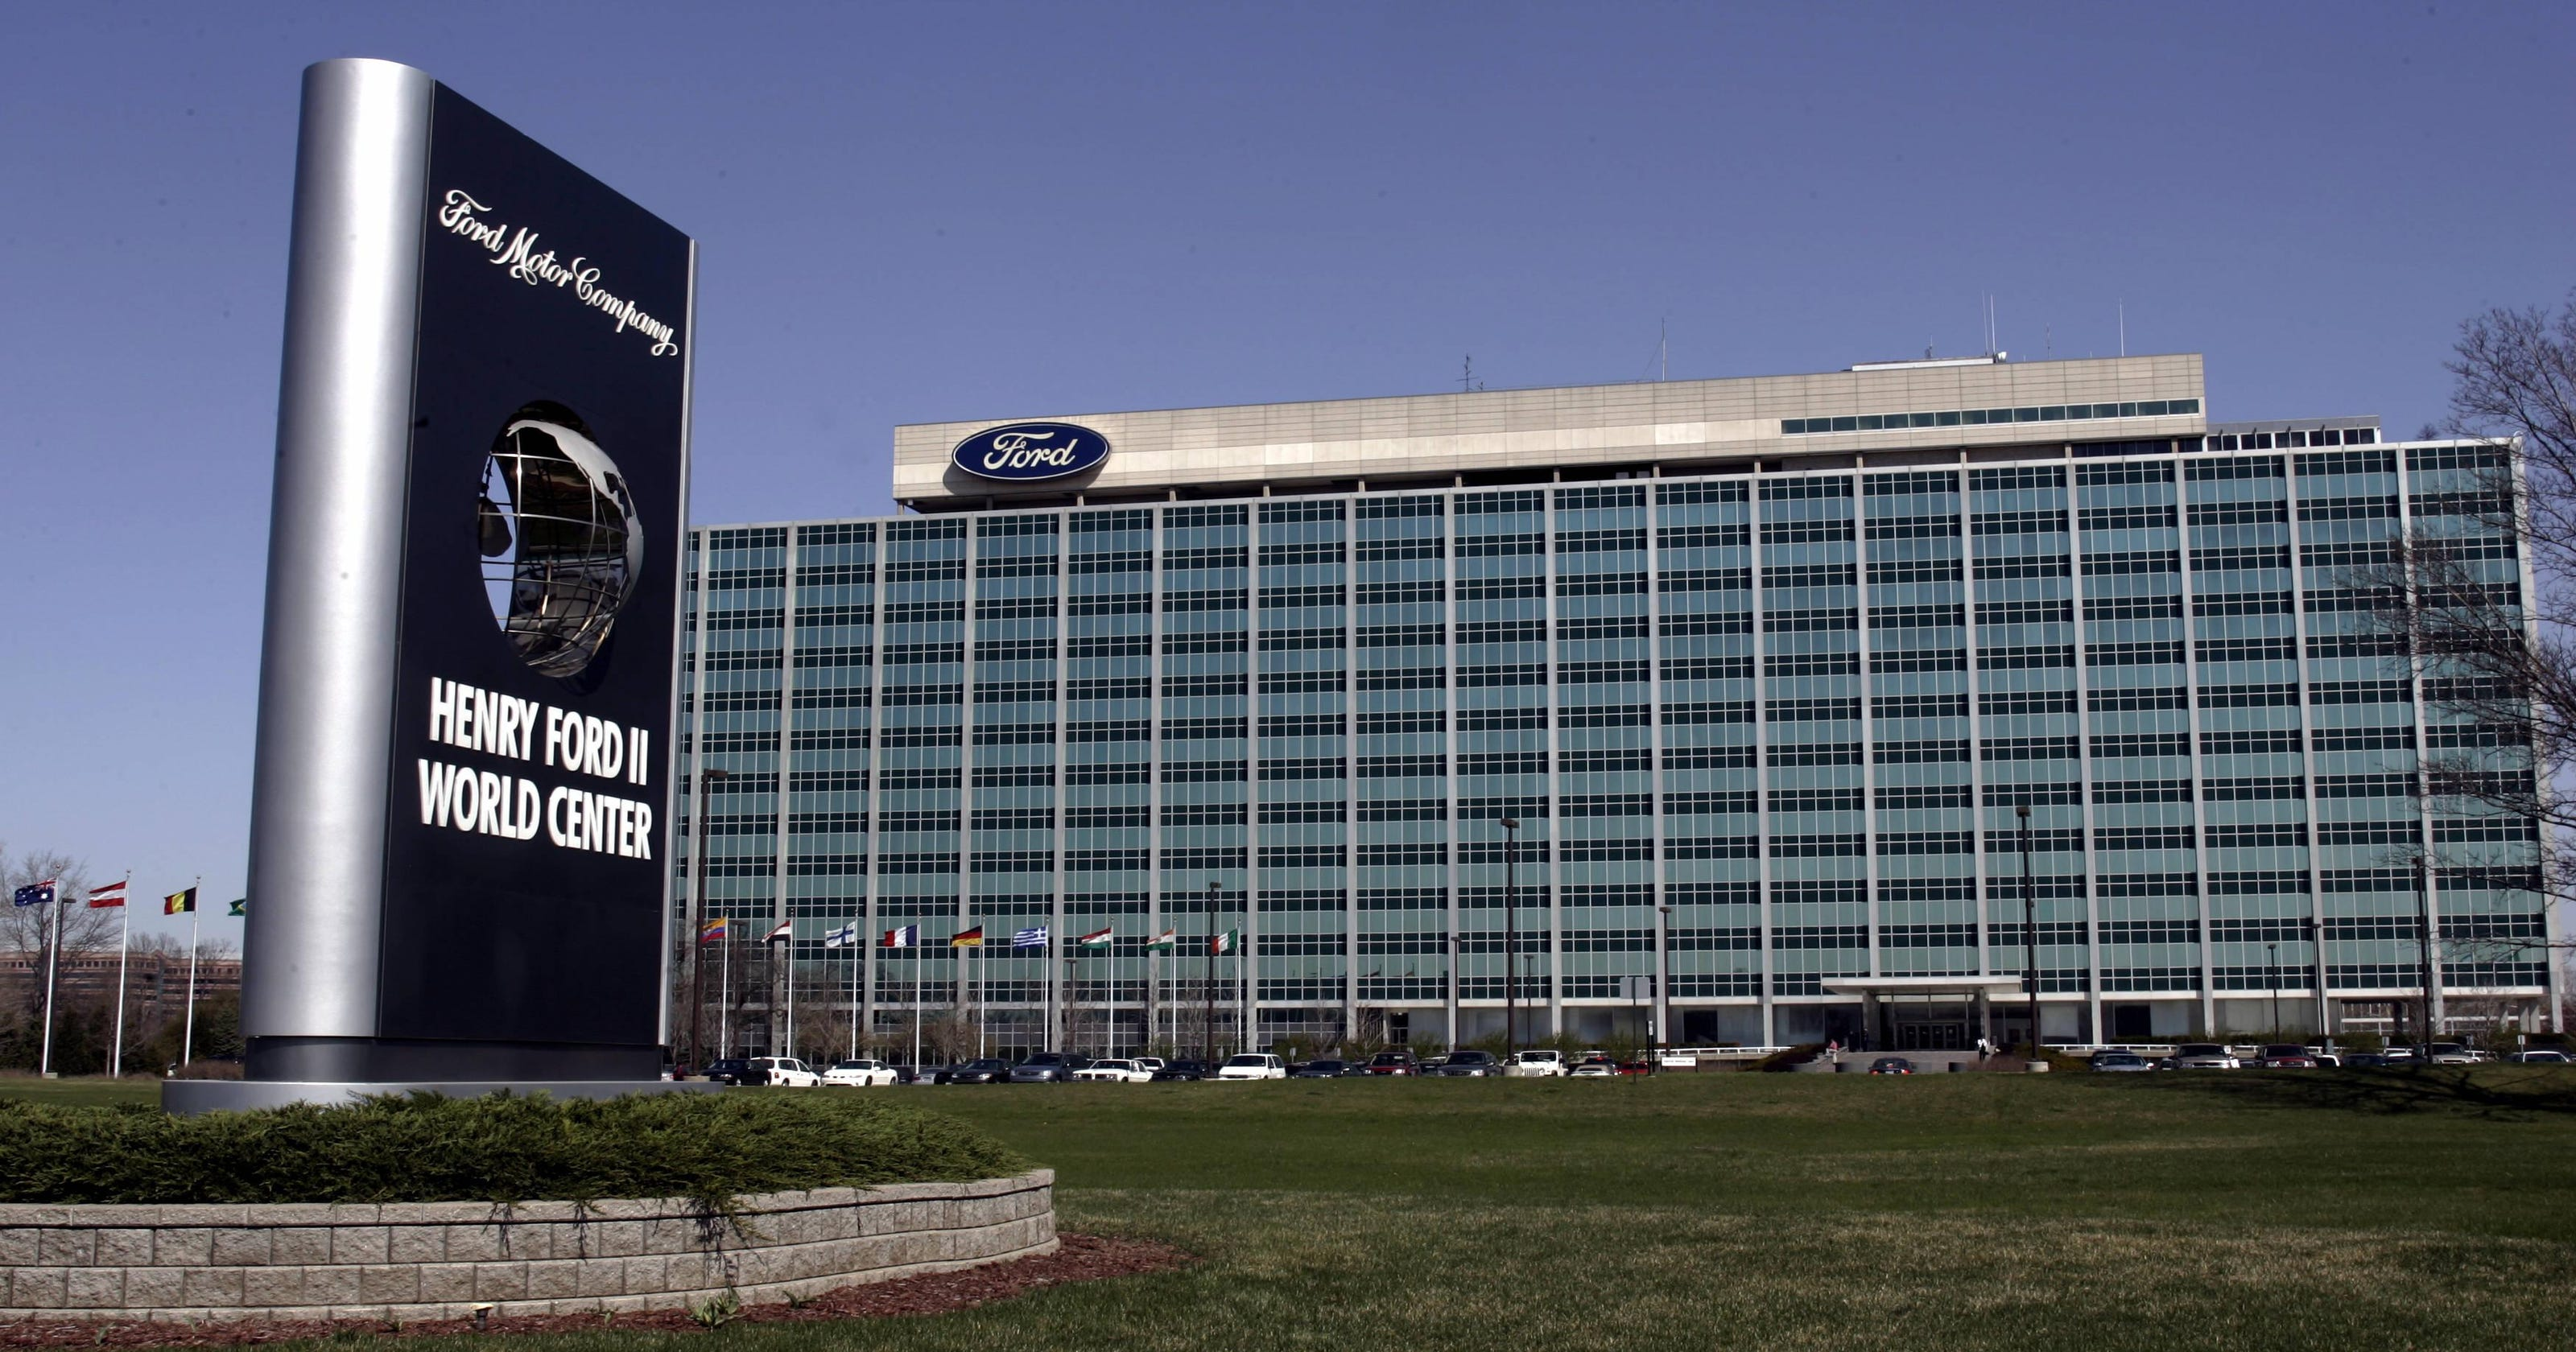 Ford expects to cut jobs in global restructuring